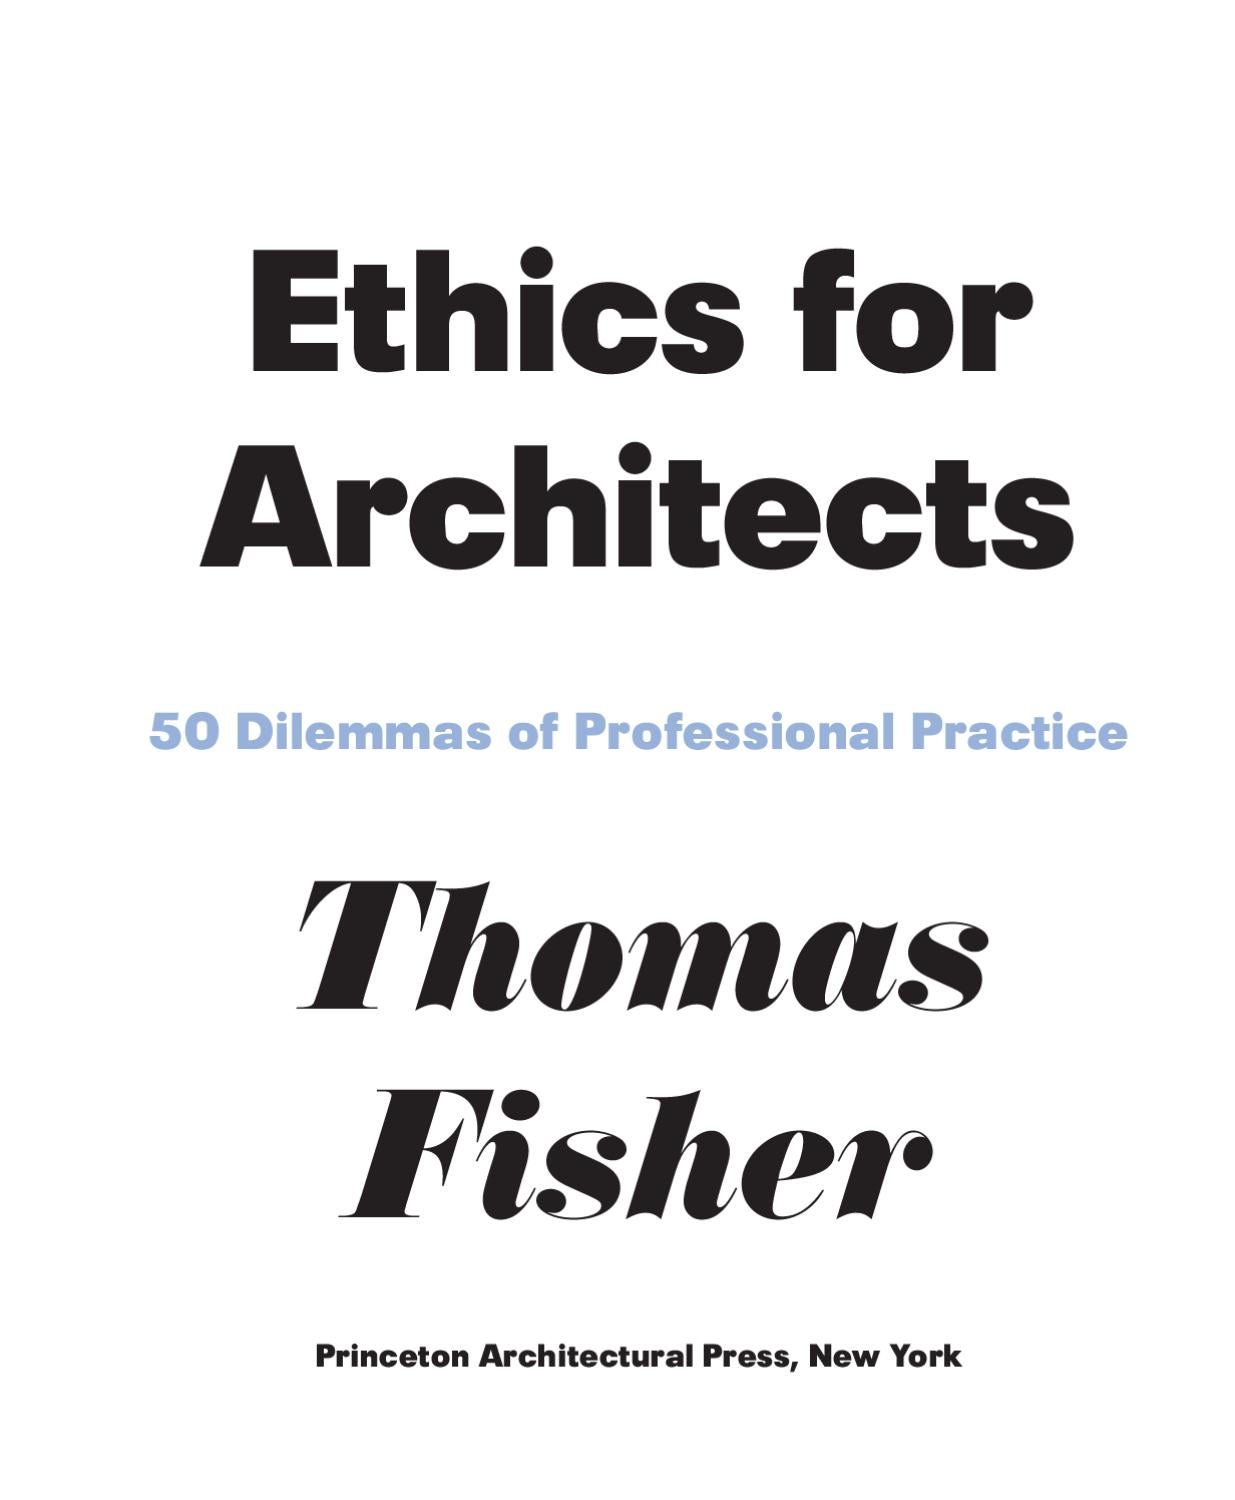 Ethics for Architects: 50 Dilemmas of Professional